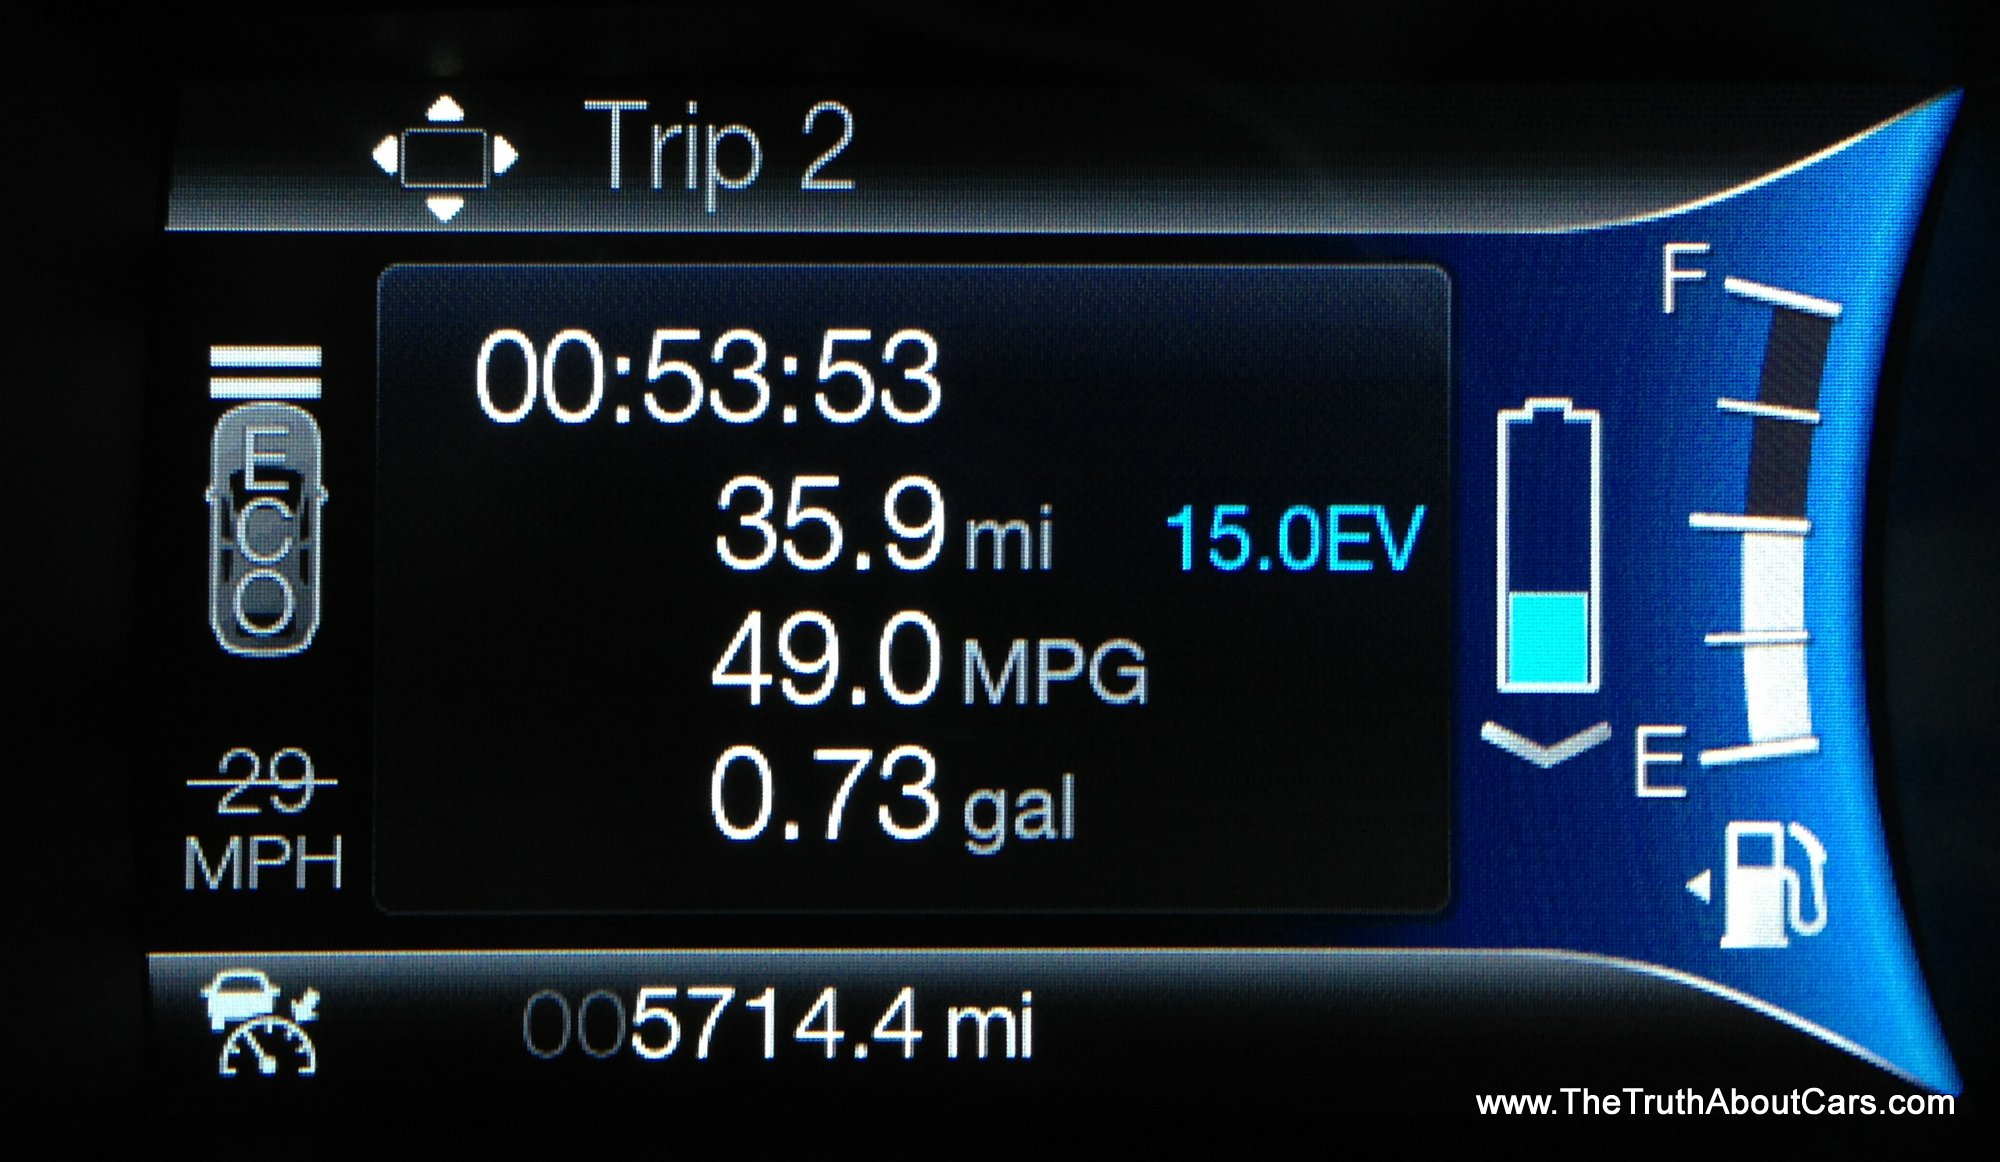 2017 Ford Fusion Hybrid Fuel Economy Display 49mpg Picture Courtesy Of Alex L